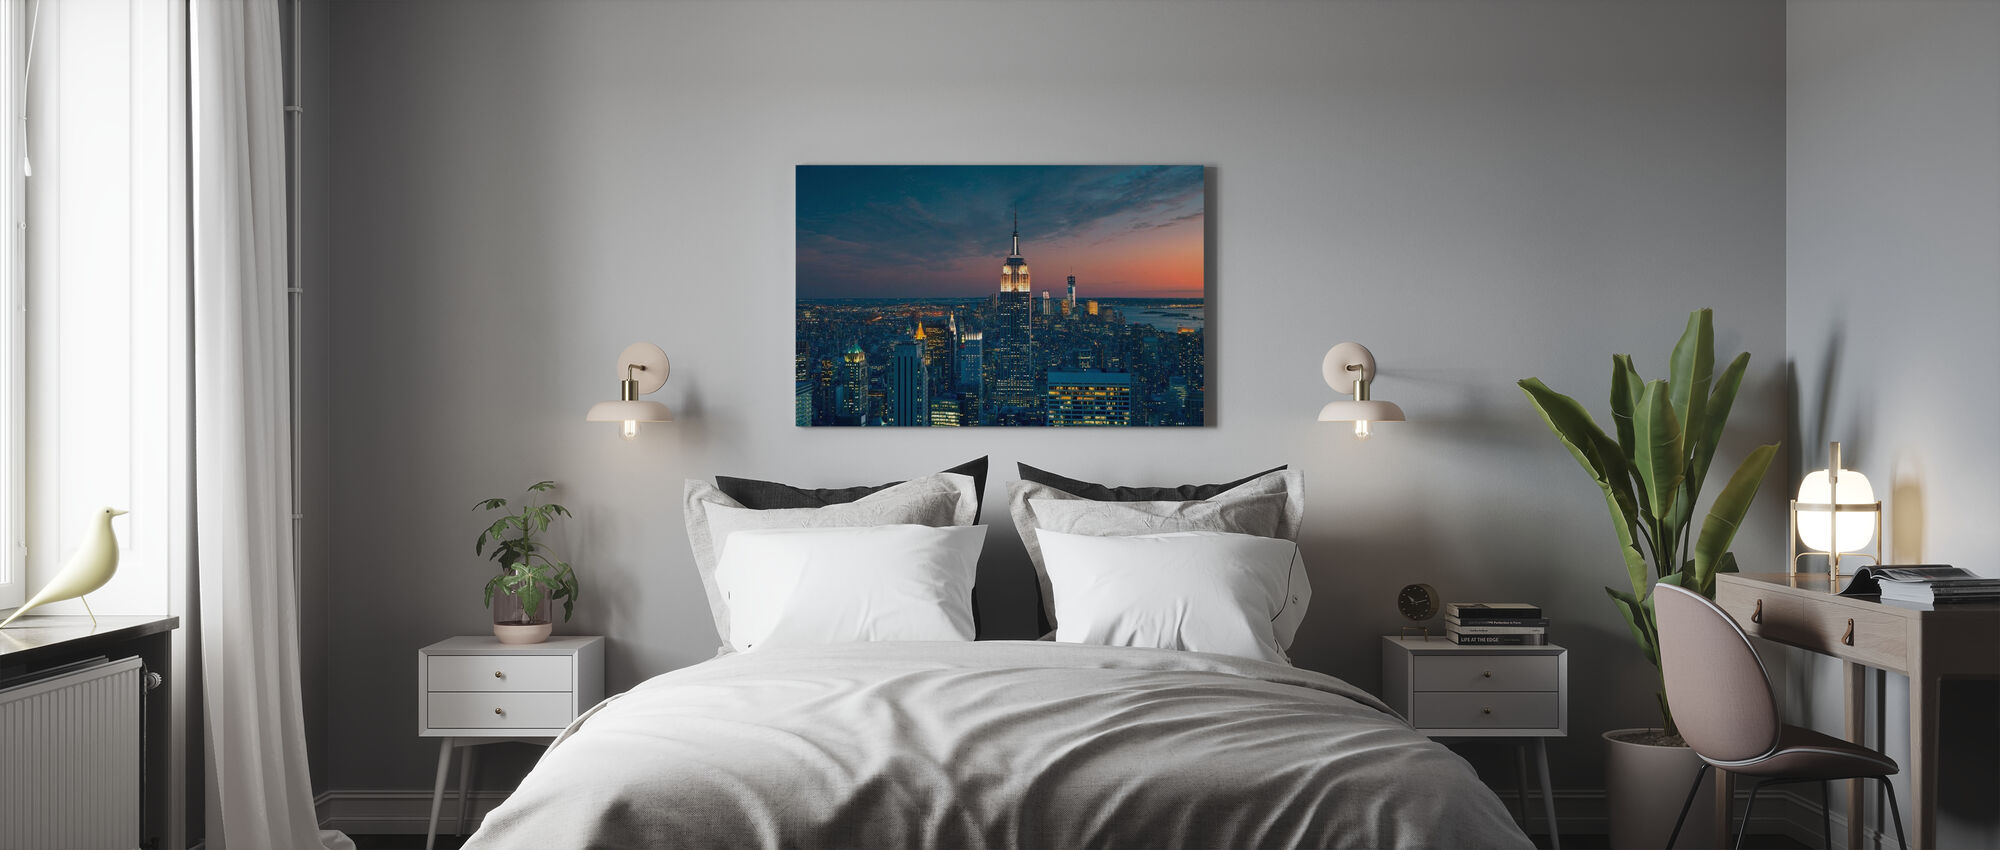 Aerial View of Manhattan at Sunset - Canvas print - Bedroom